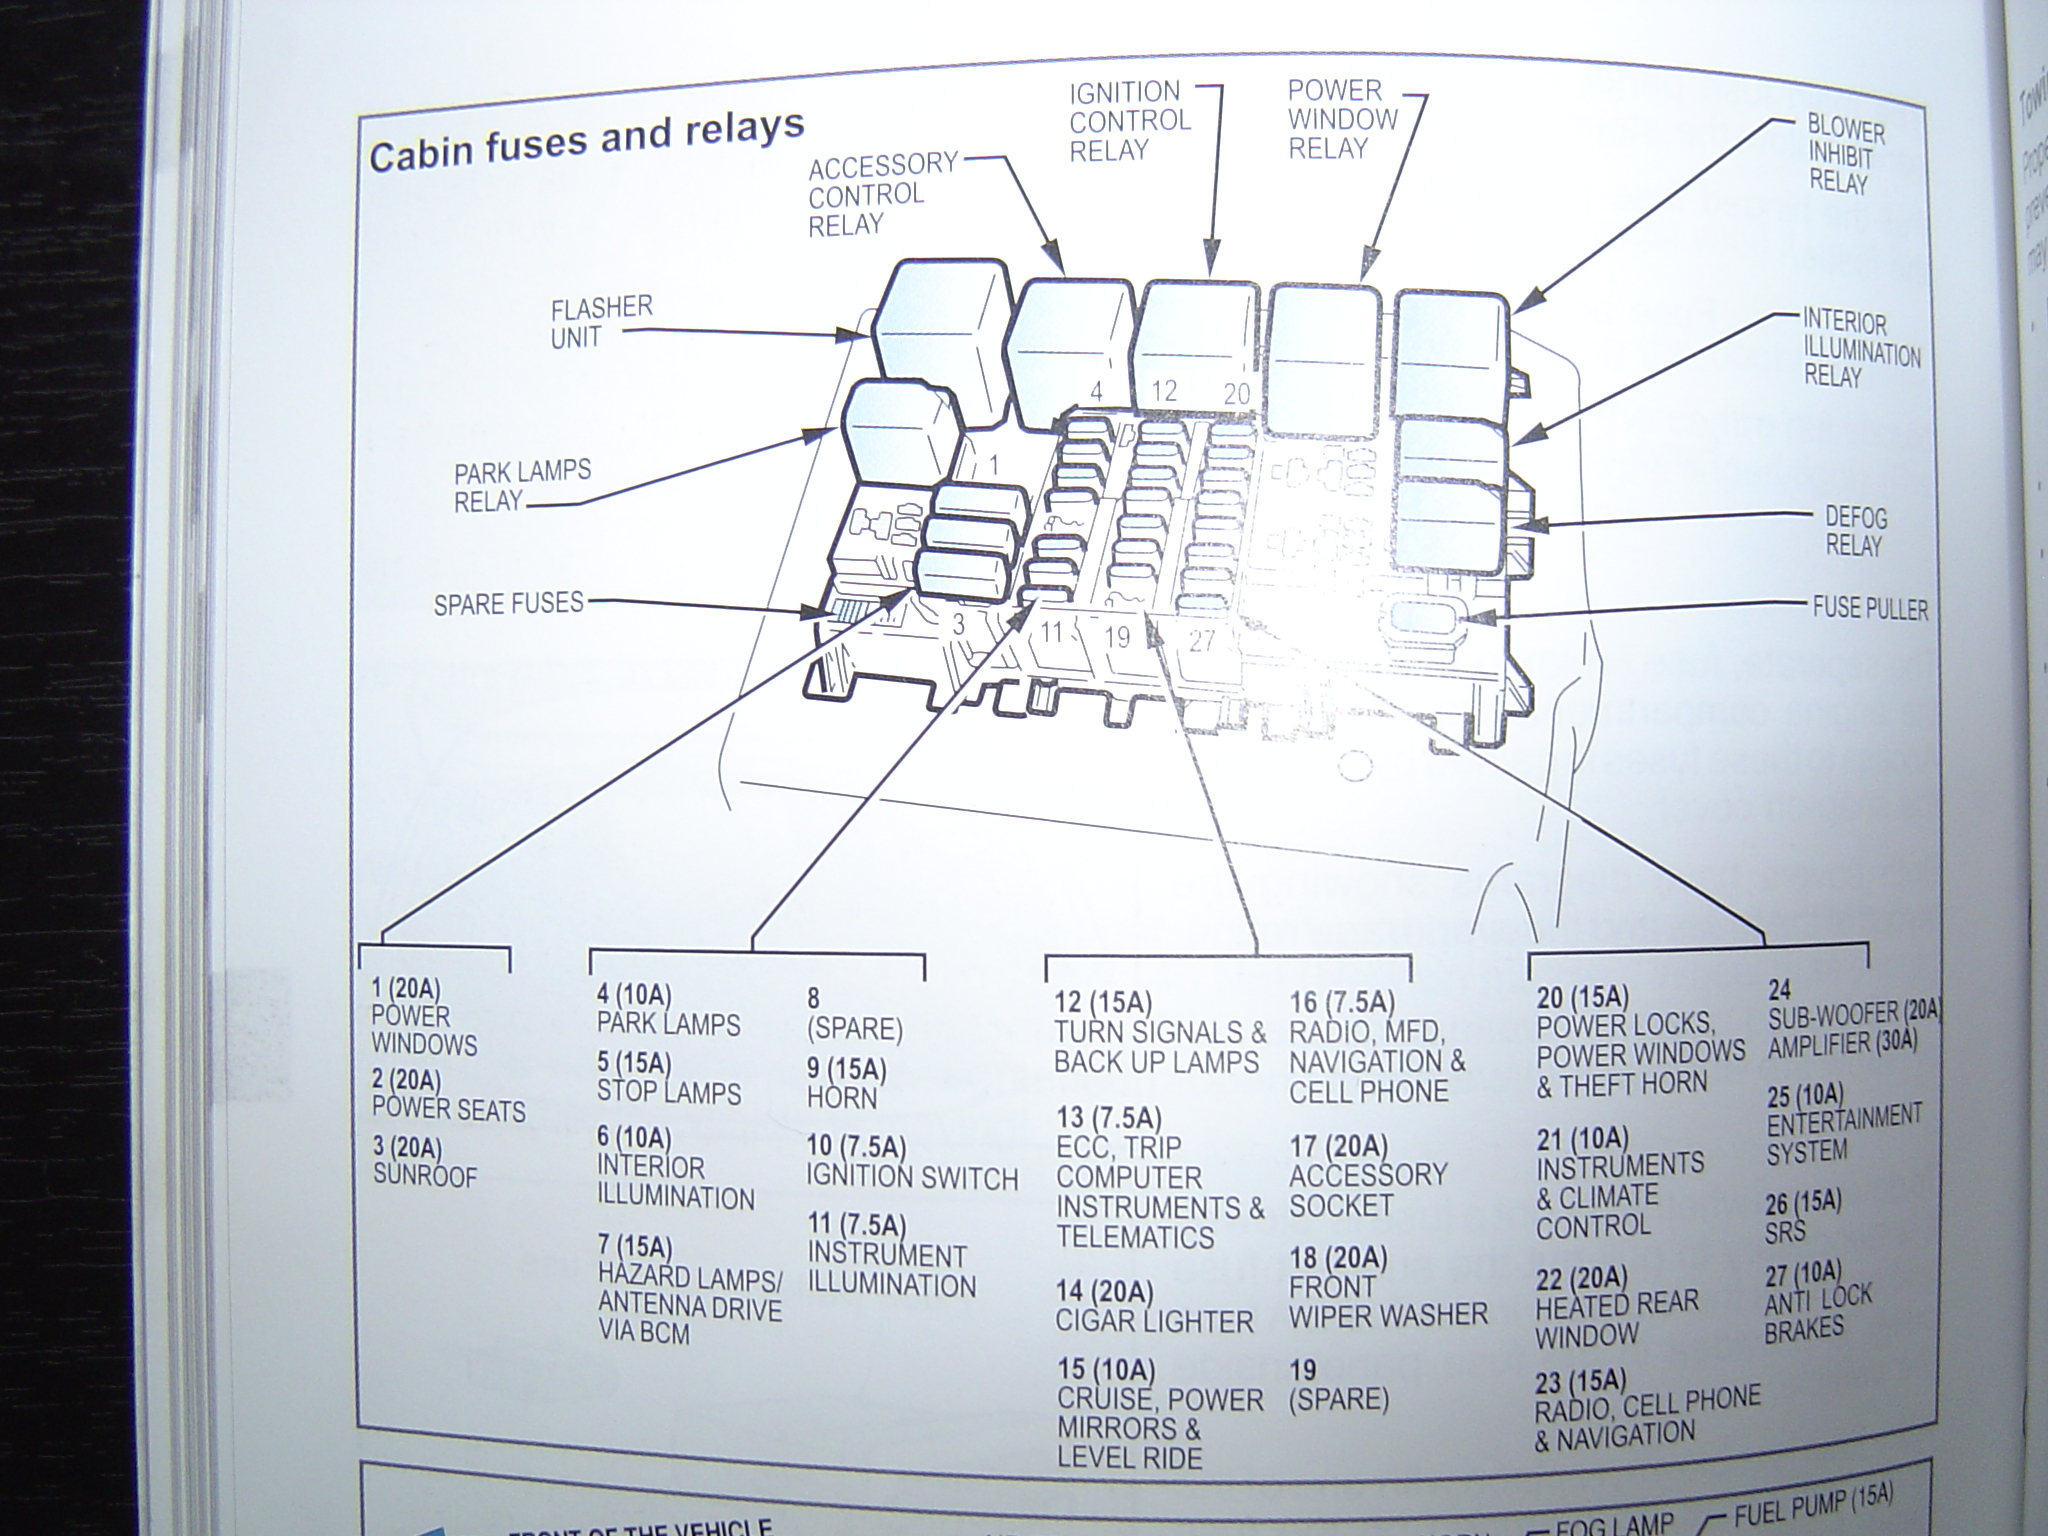 VY_CABIN_FUSEBOX fuse box diagram ba falcon fuse wiring diagrams instruction ford au 2001 fuse box diagram at eliteediting.co